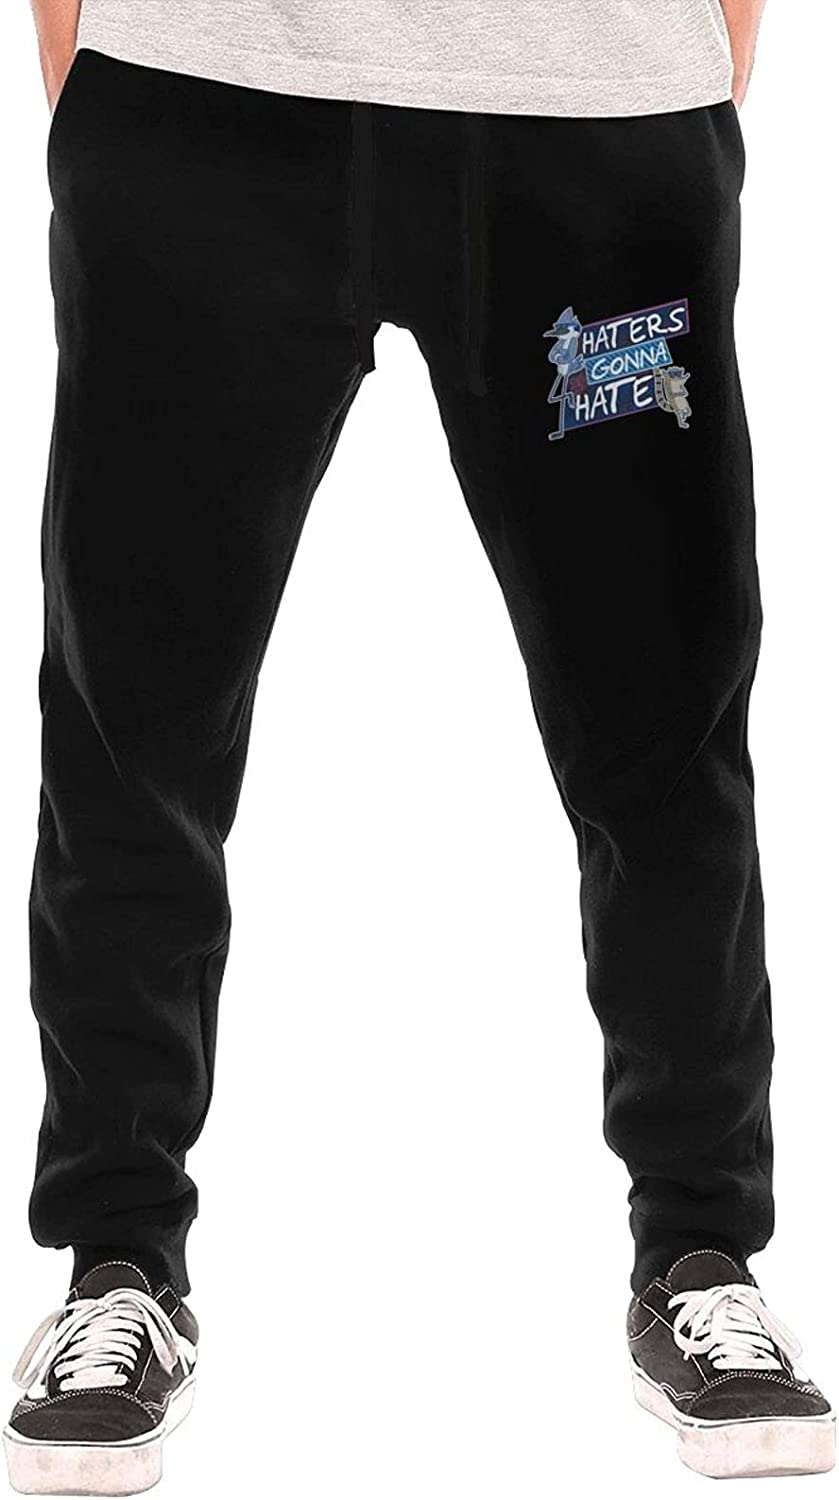 Regular Show Colorado Springs Mall Sweatpants Men's Basic Wo Jogging Al sold out. Jogger for Pants